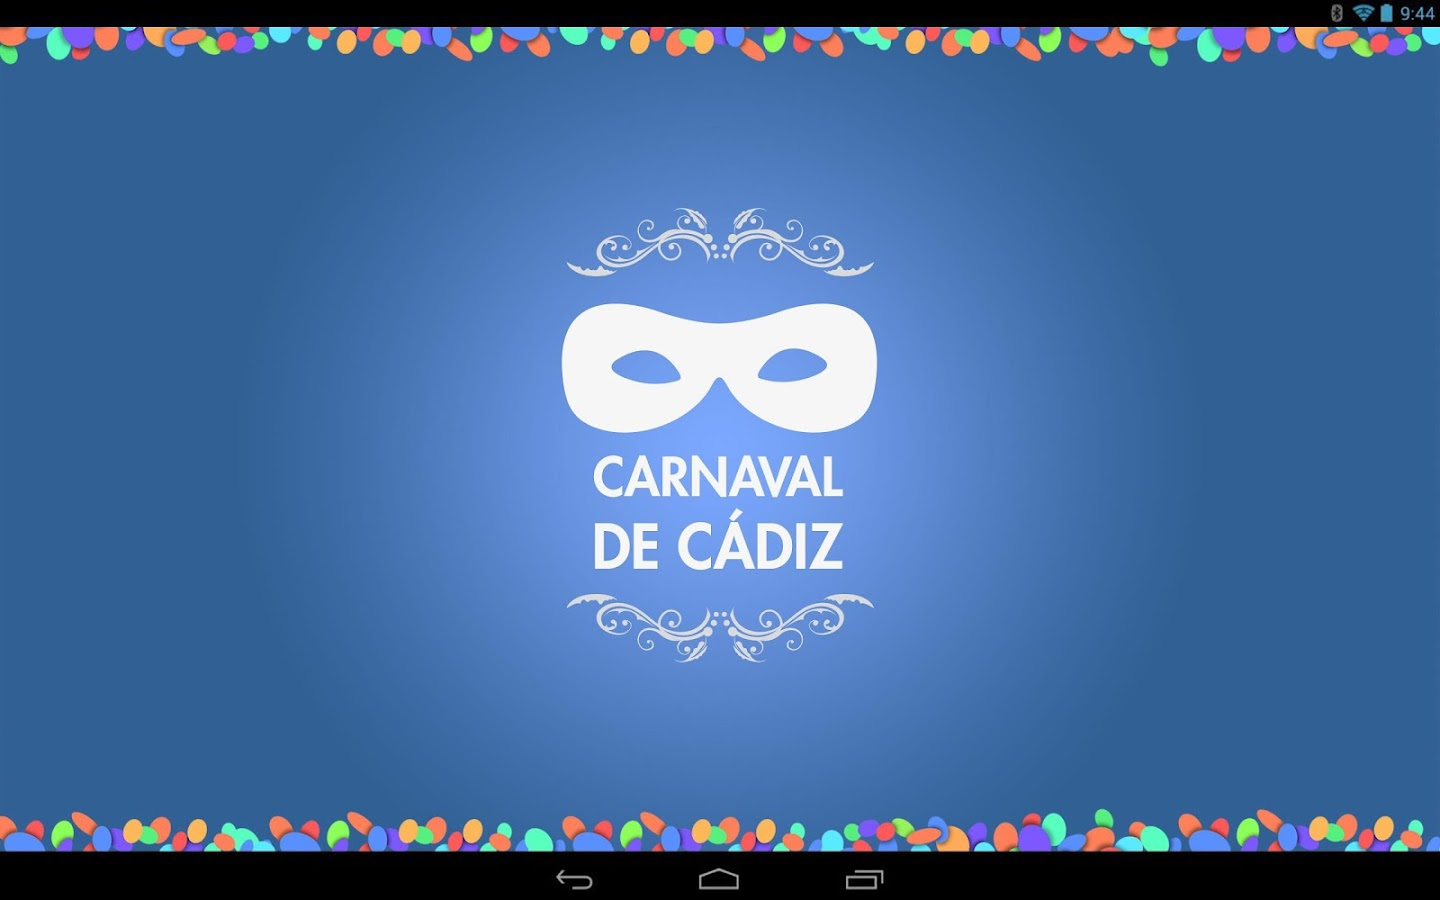 google video carnaval cadiz: